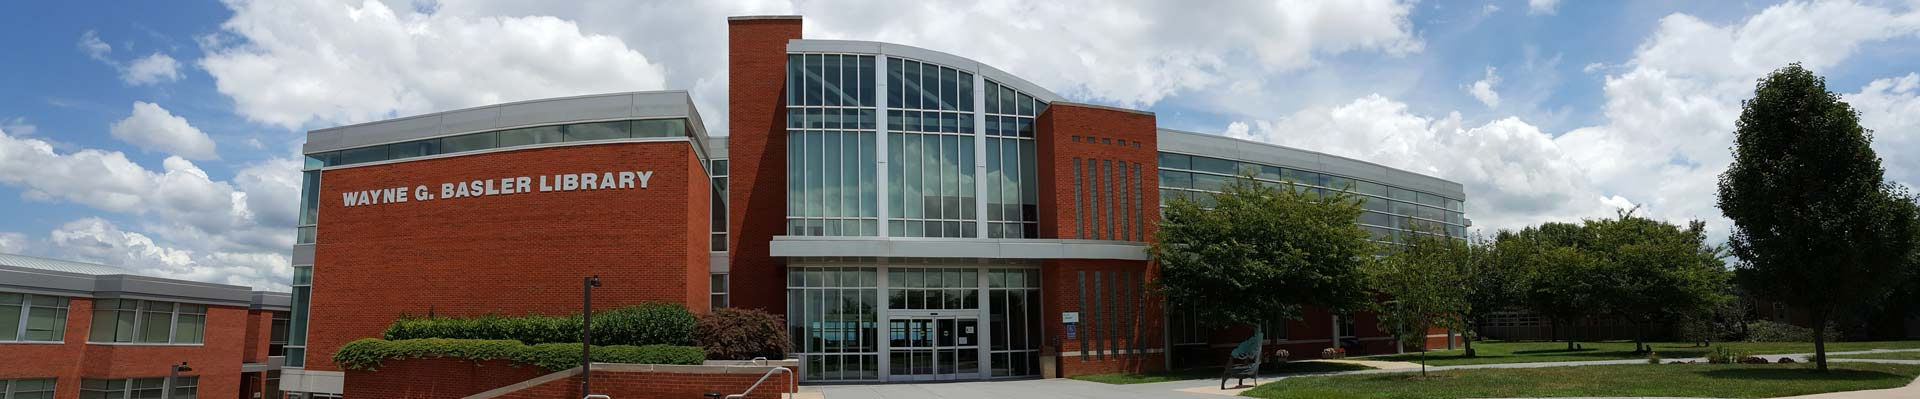 Wayne G. Basler Library at Northeast State